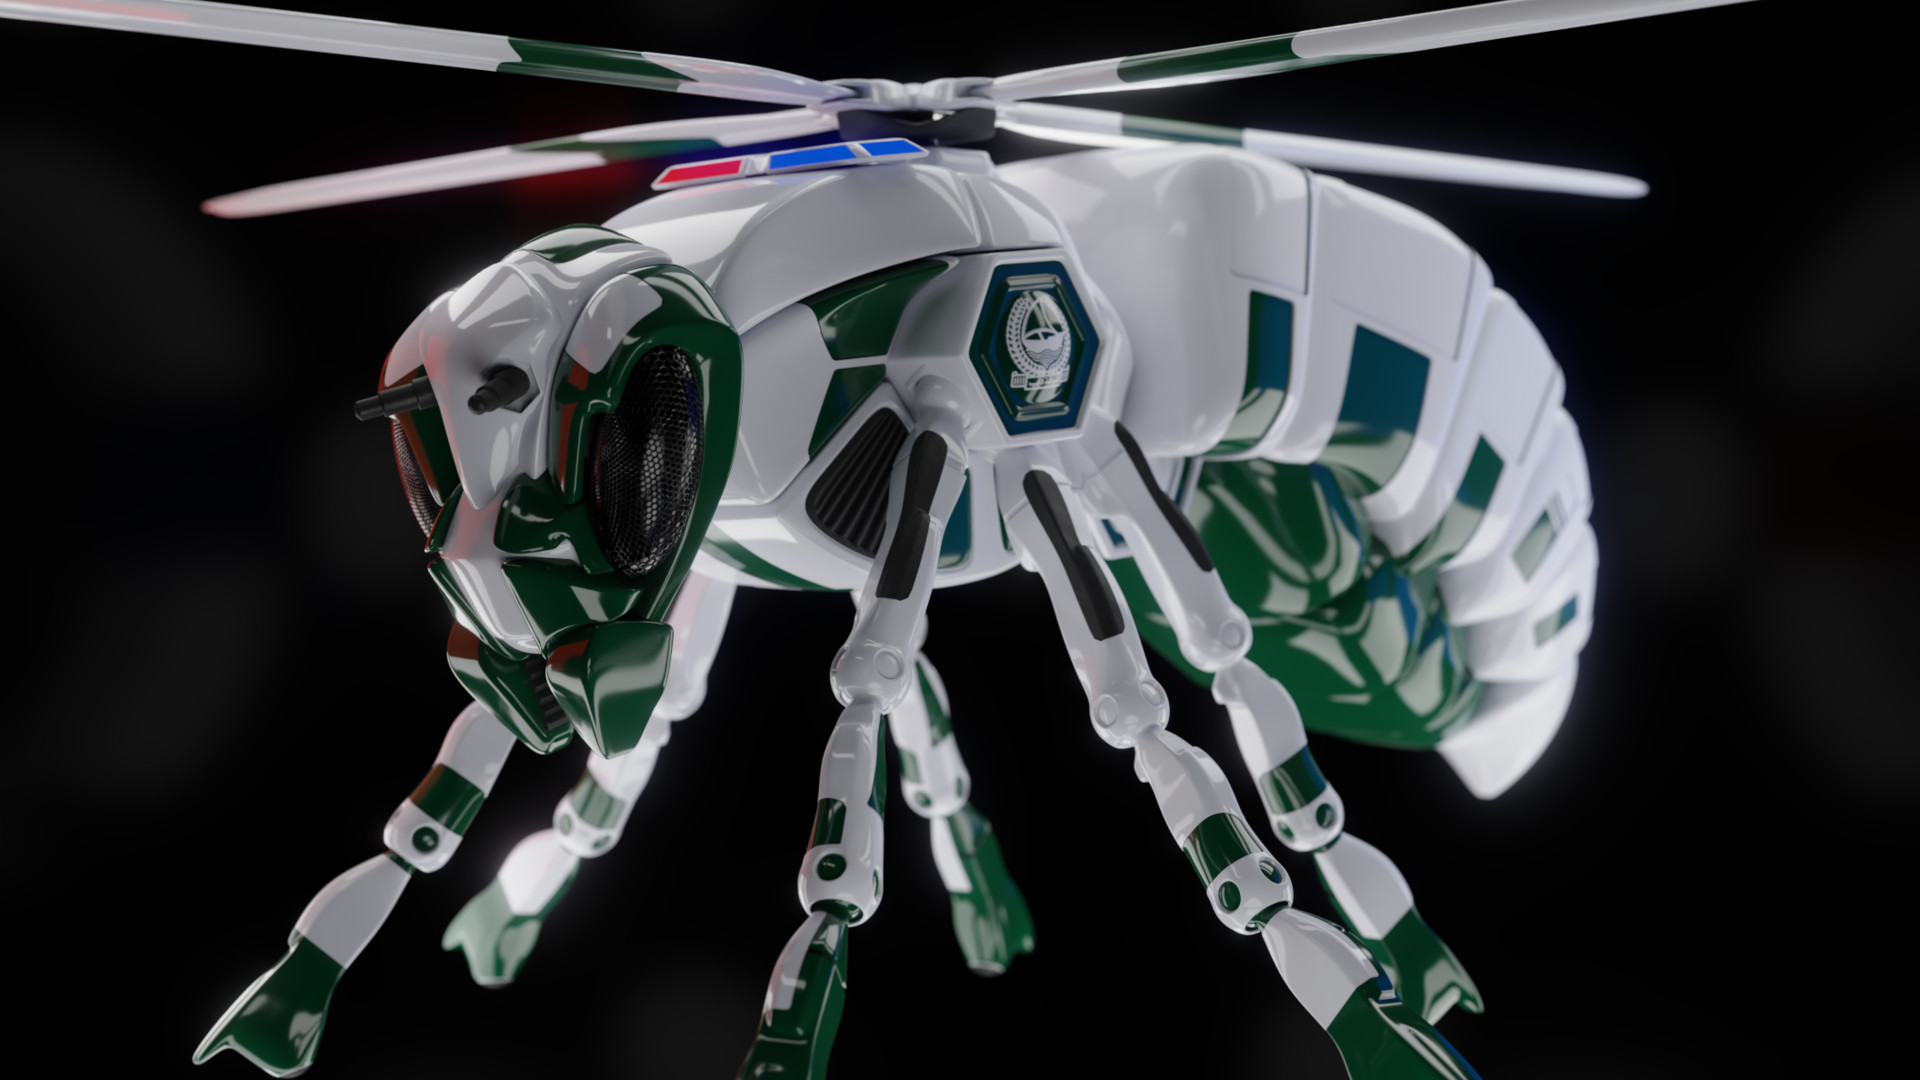 Alexander schmid insect vehicle 45